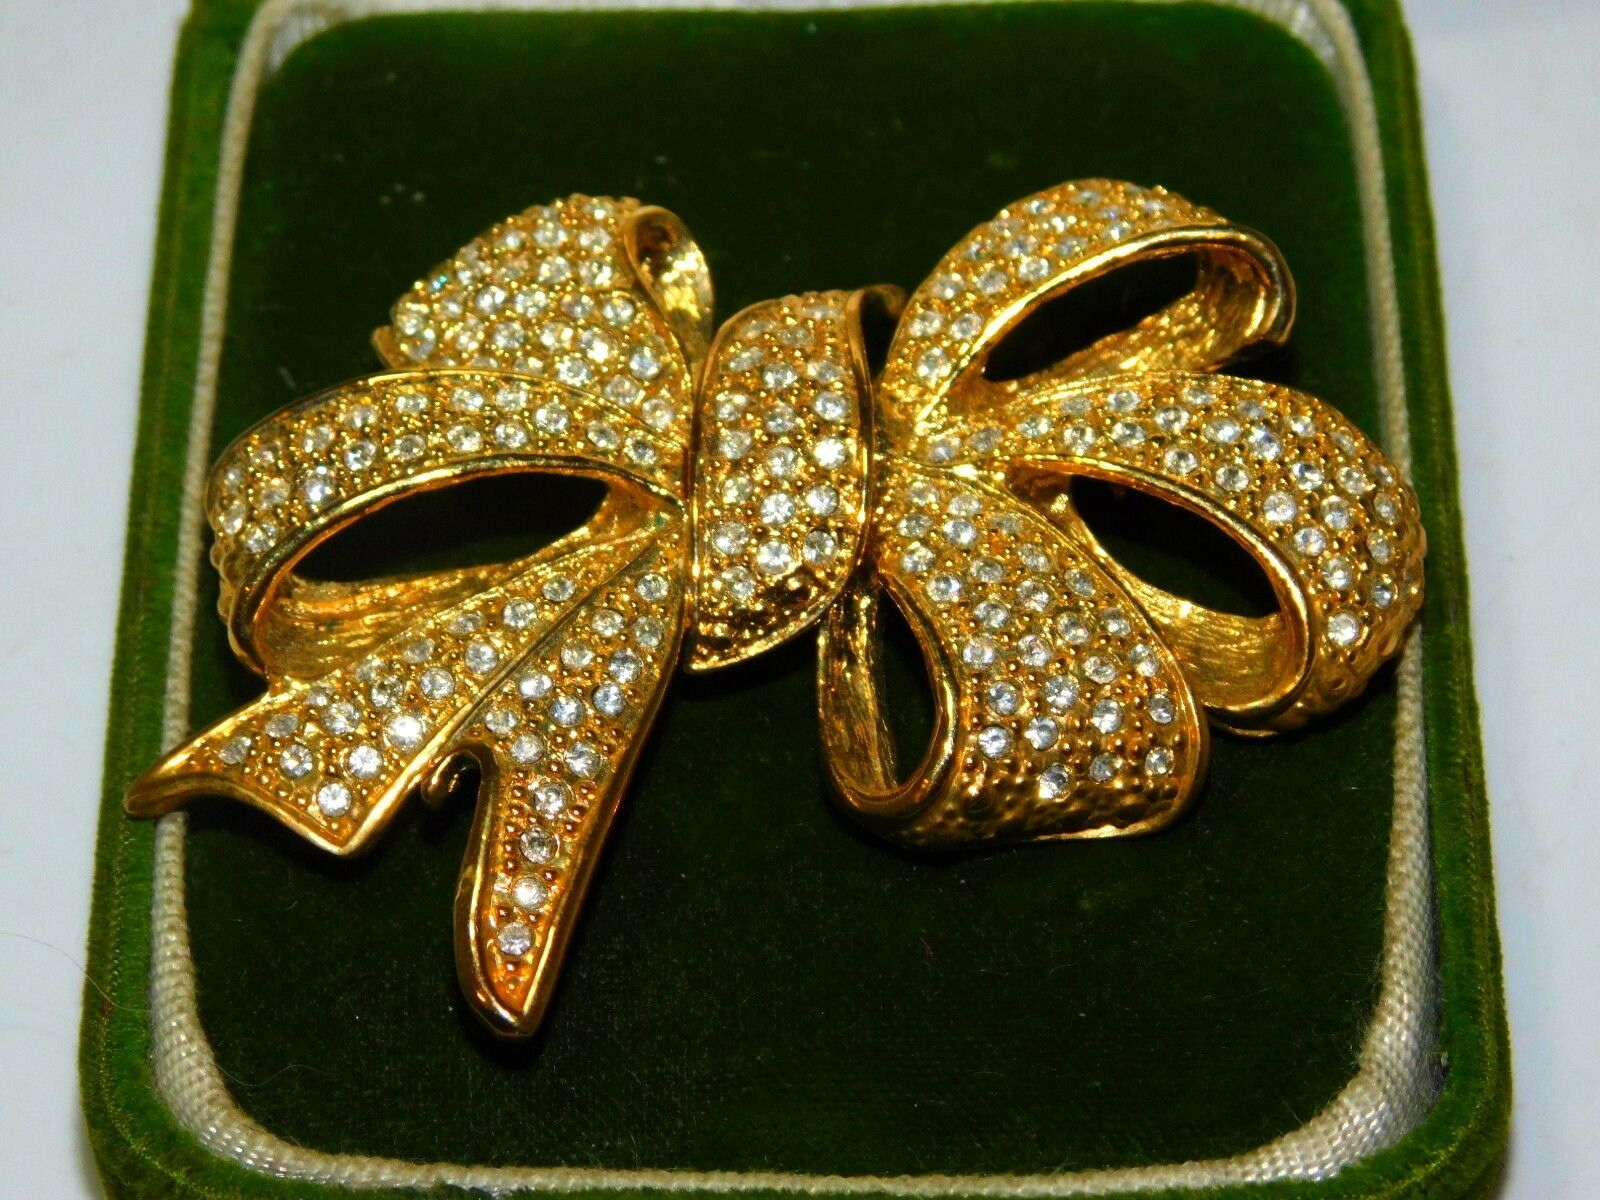 Huge Vintage High End Roman Shiny Rhinestone Bow gold Brooch Pin 11d 69